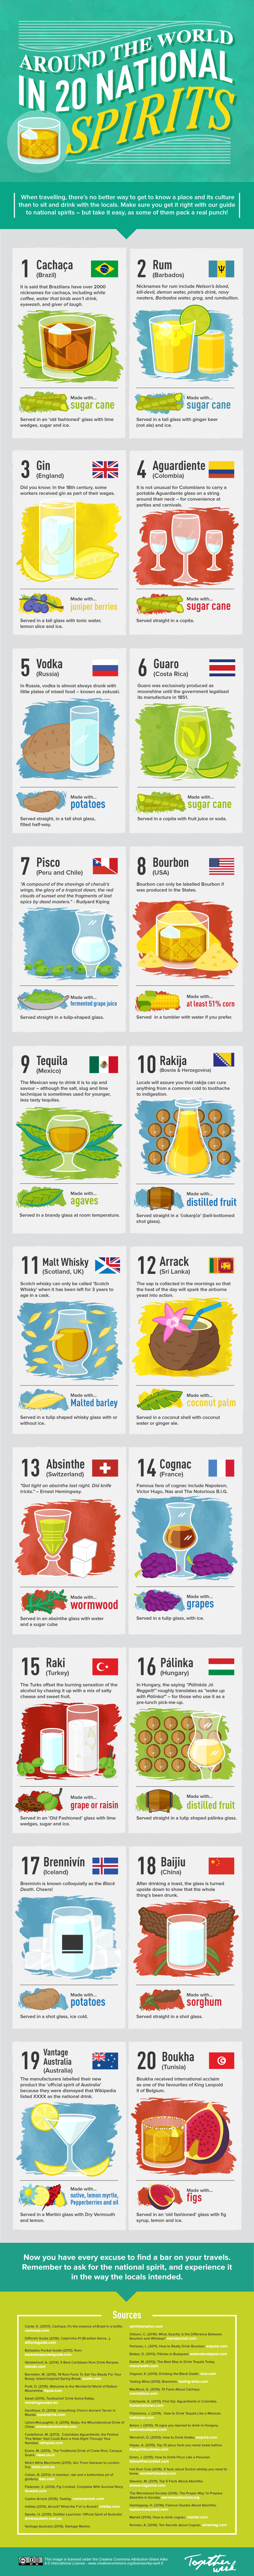 Around the World in 15 National Spirits [Infographic]